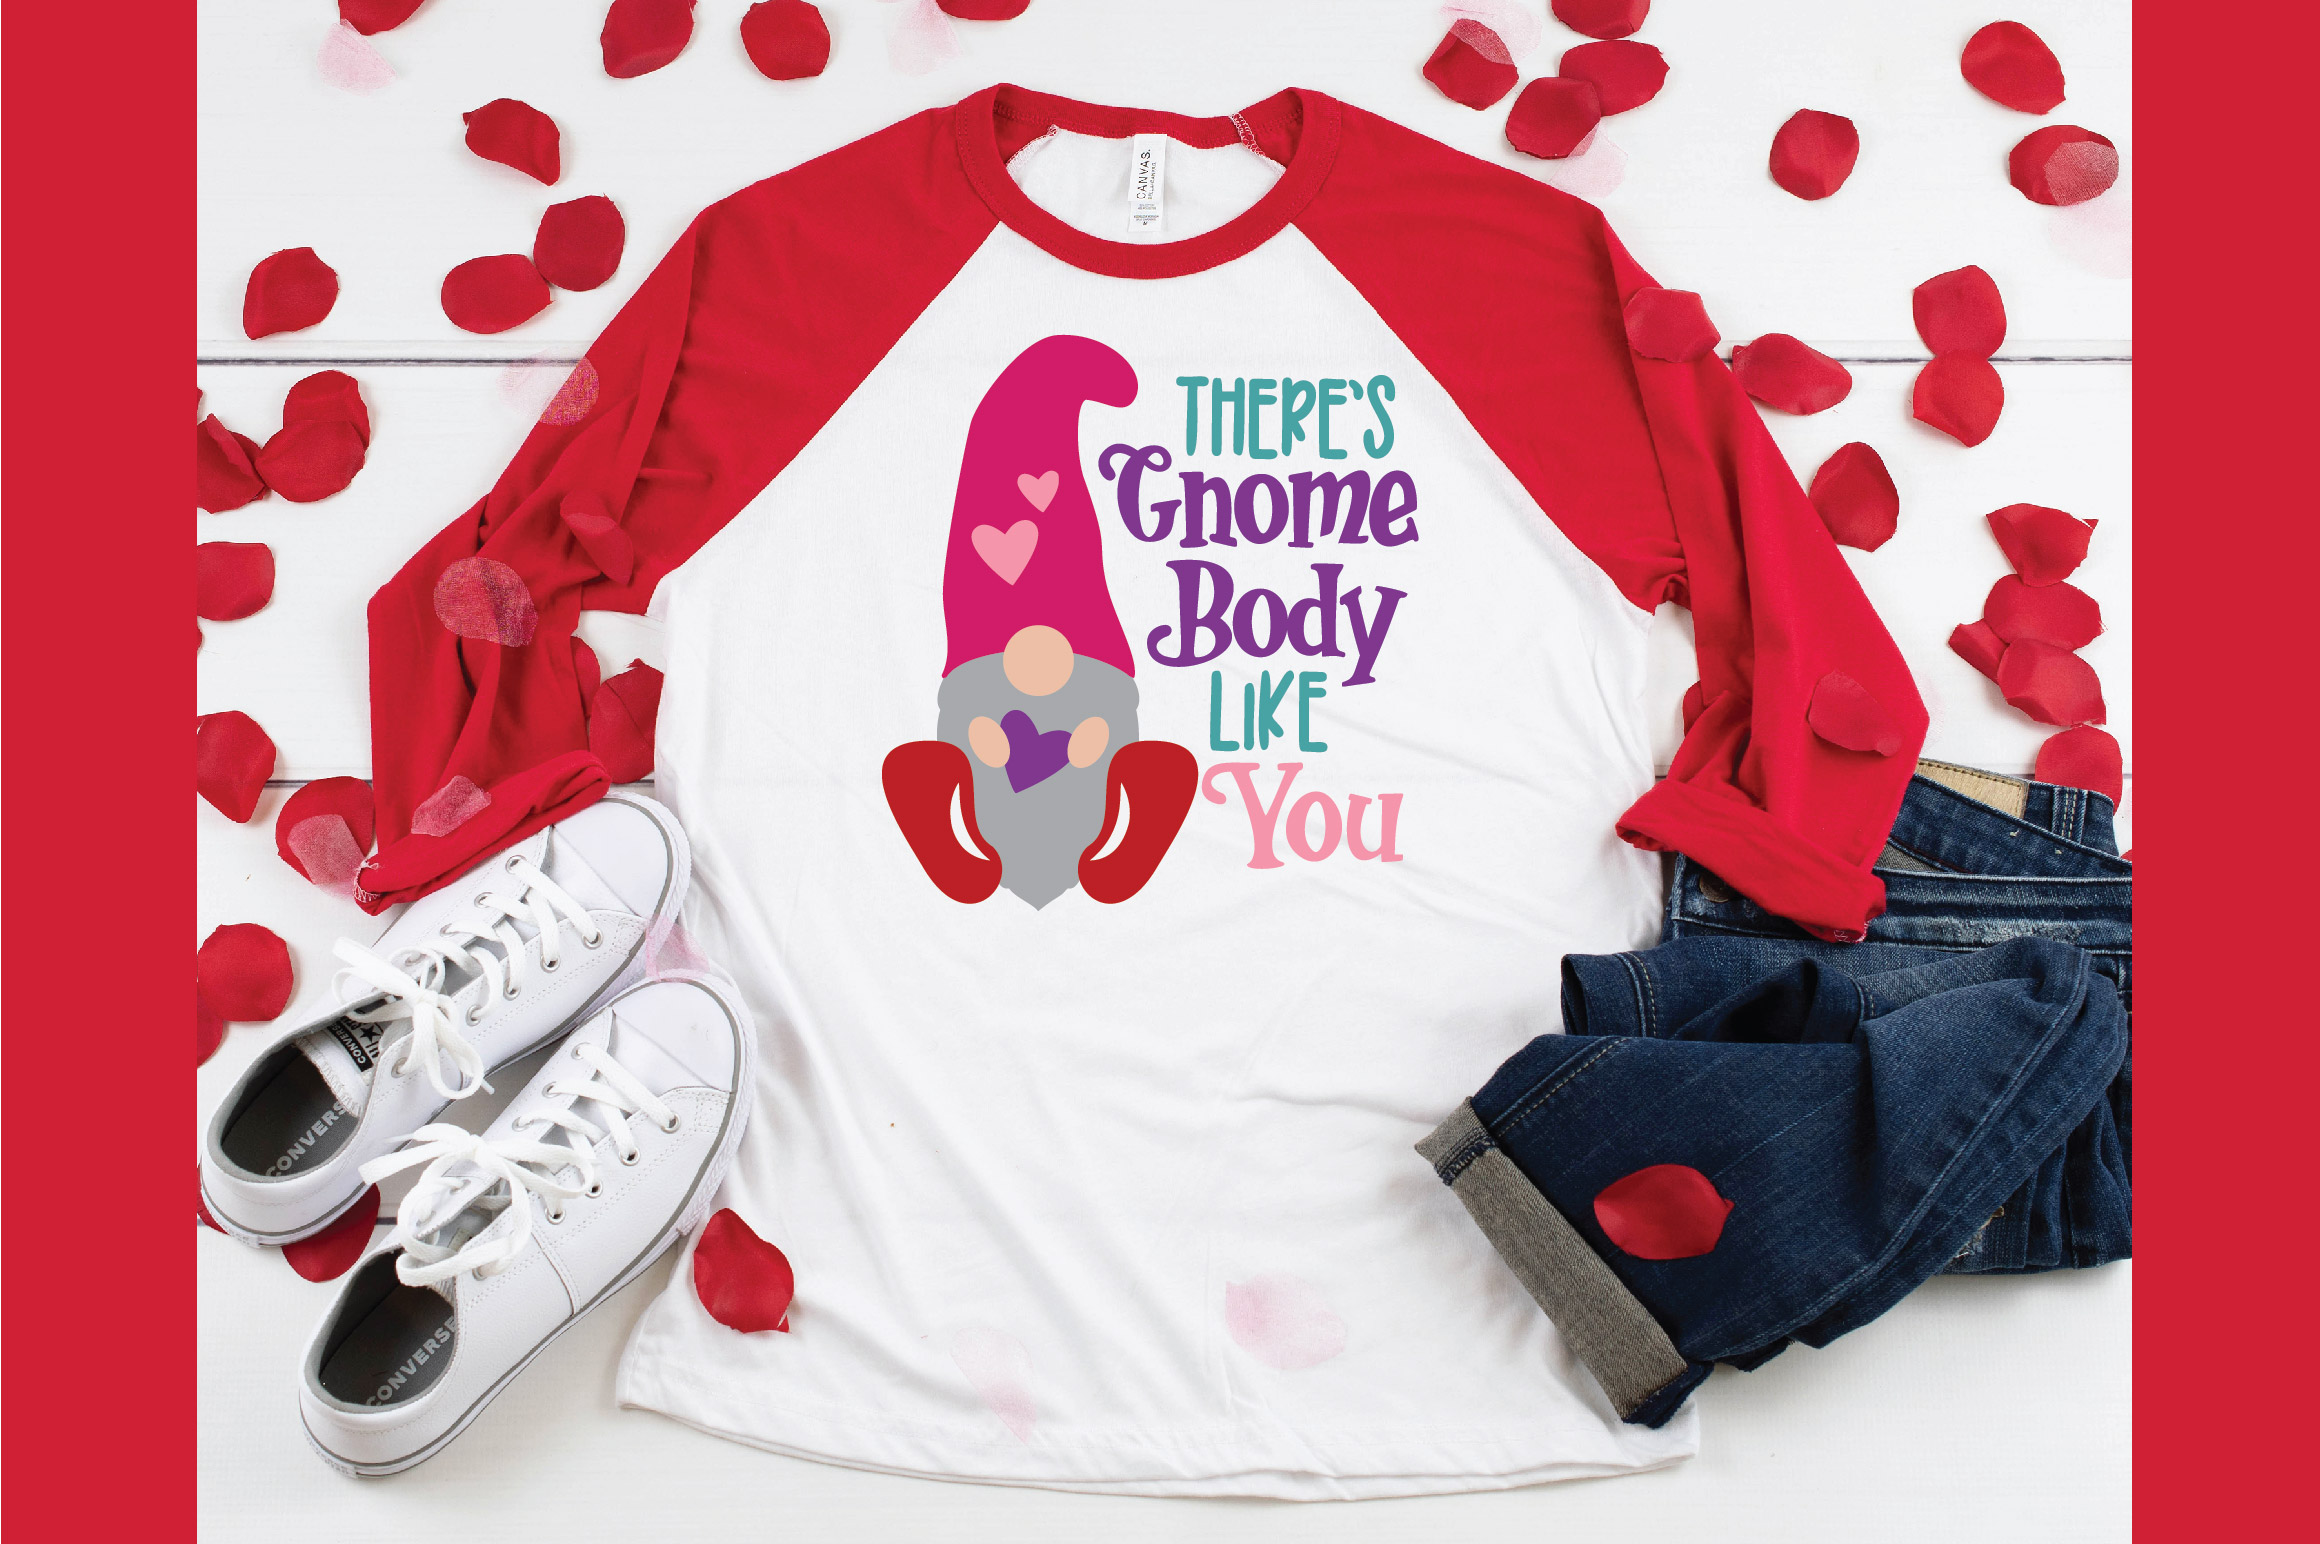 There's Gnome Body Like You SVG Cut File - Valentine SVG example image 5